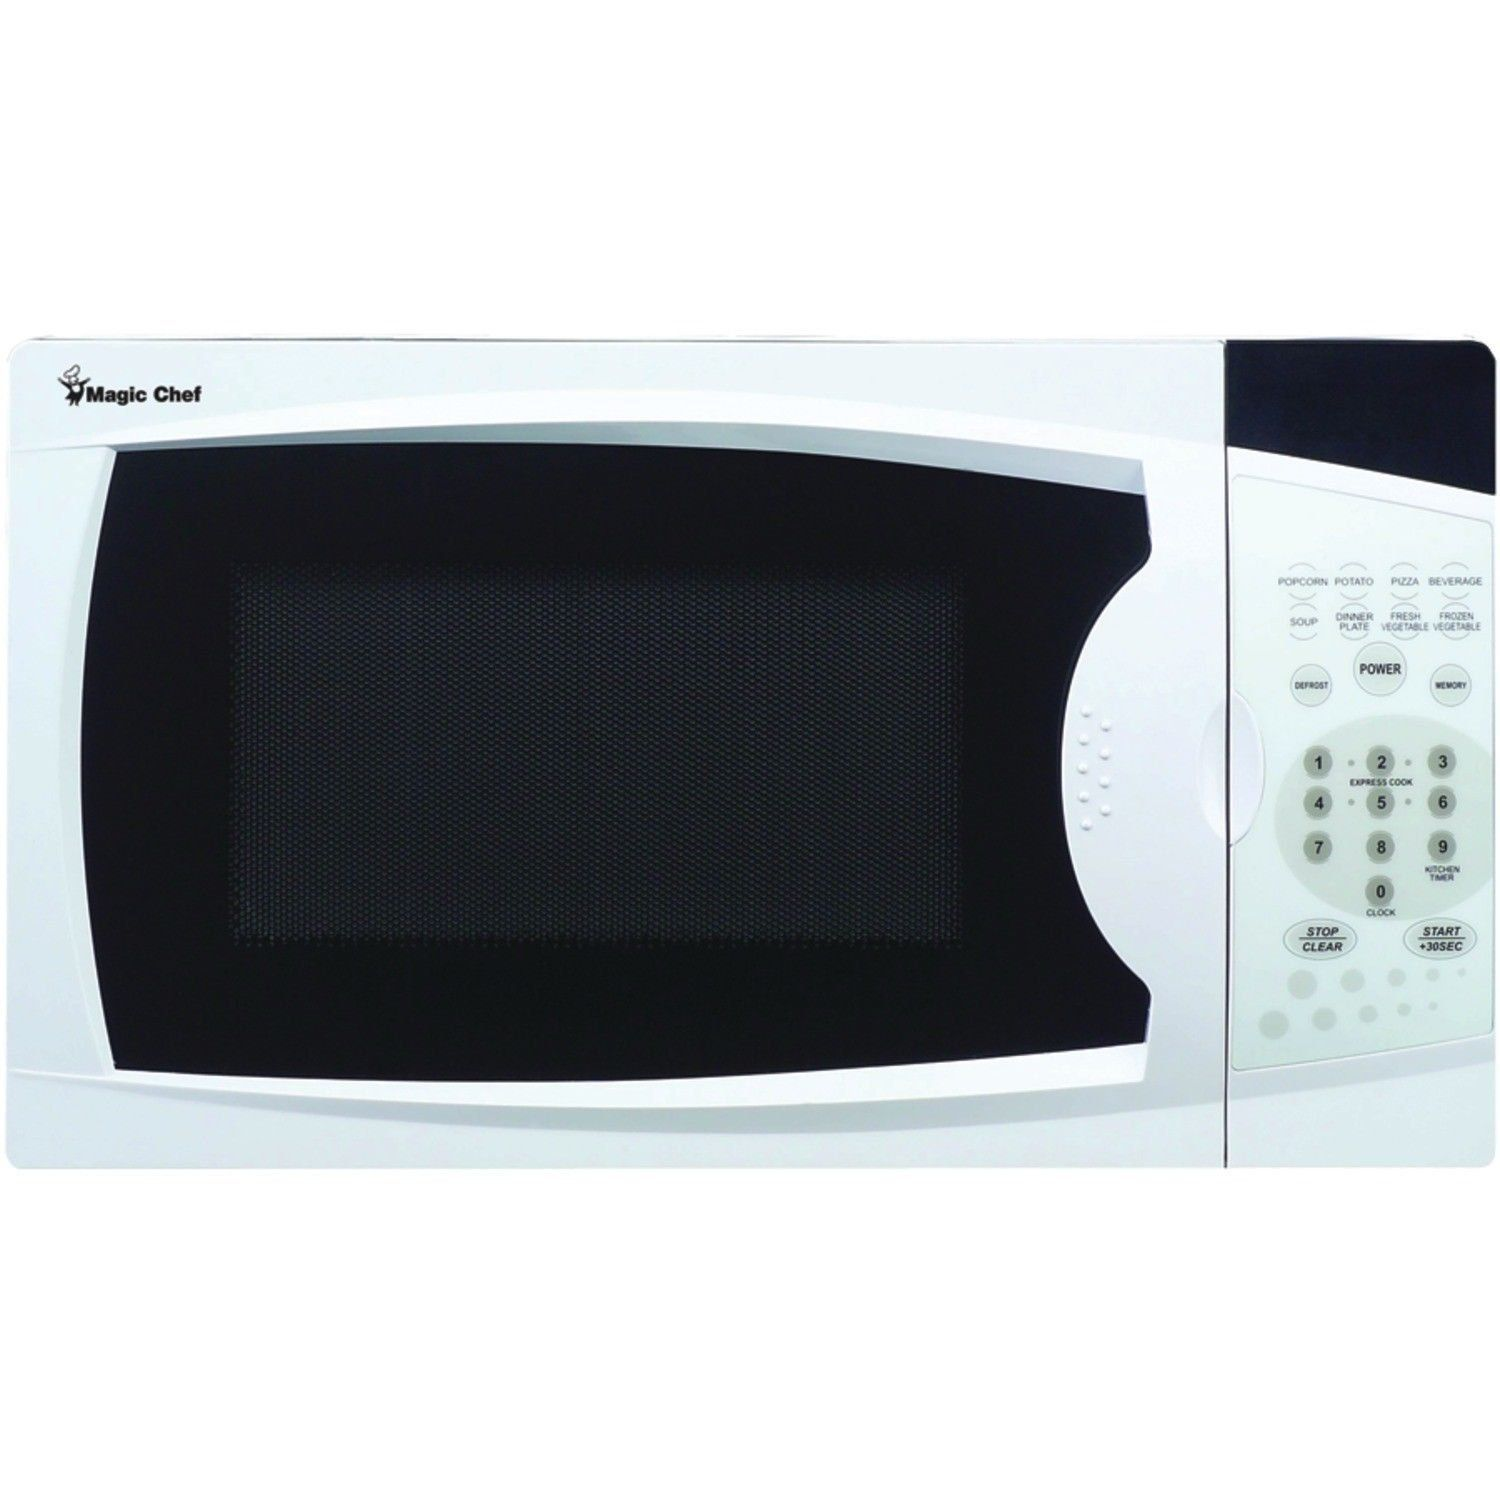 0 7 Cu Ft 700w Microwave With Digital Touch This Is An Amazon